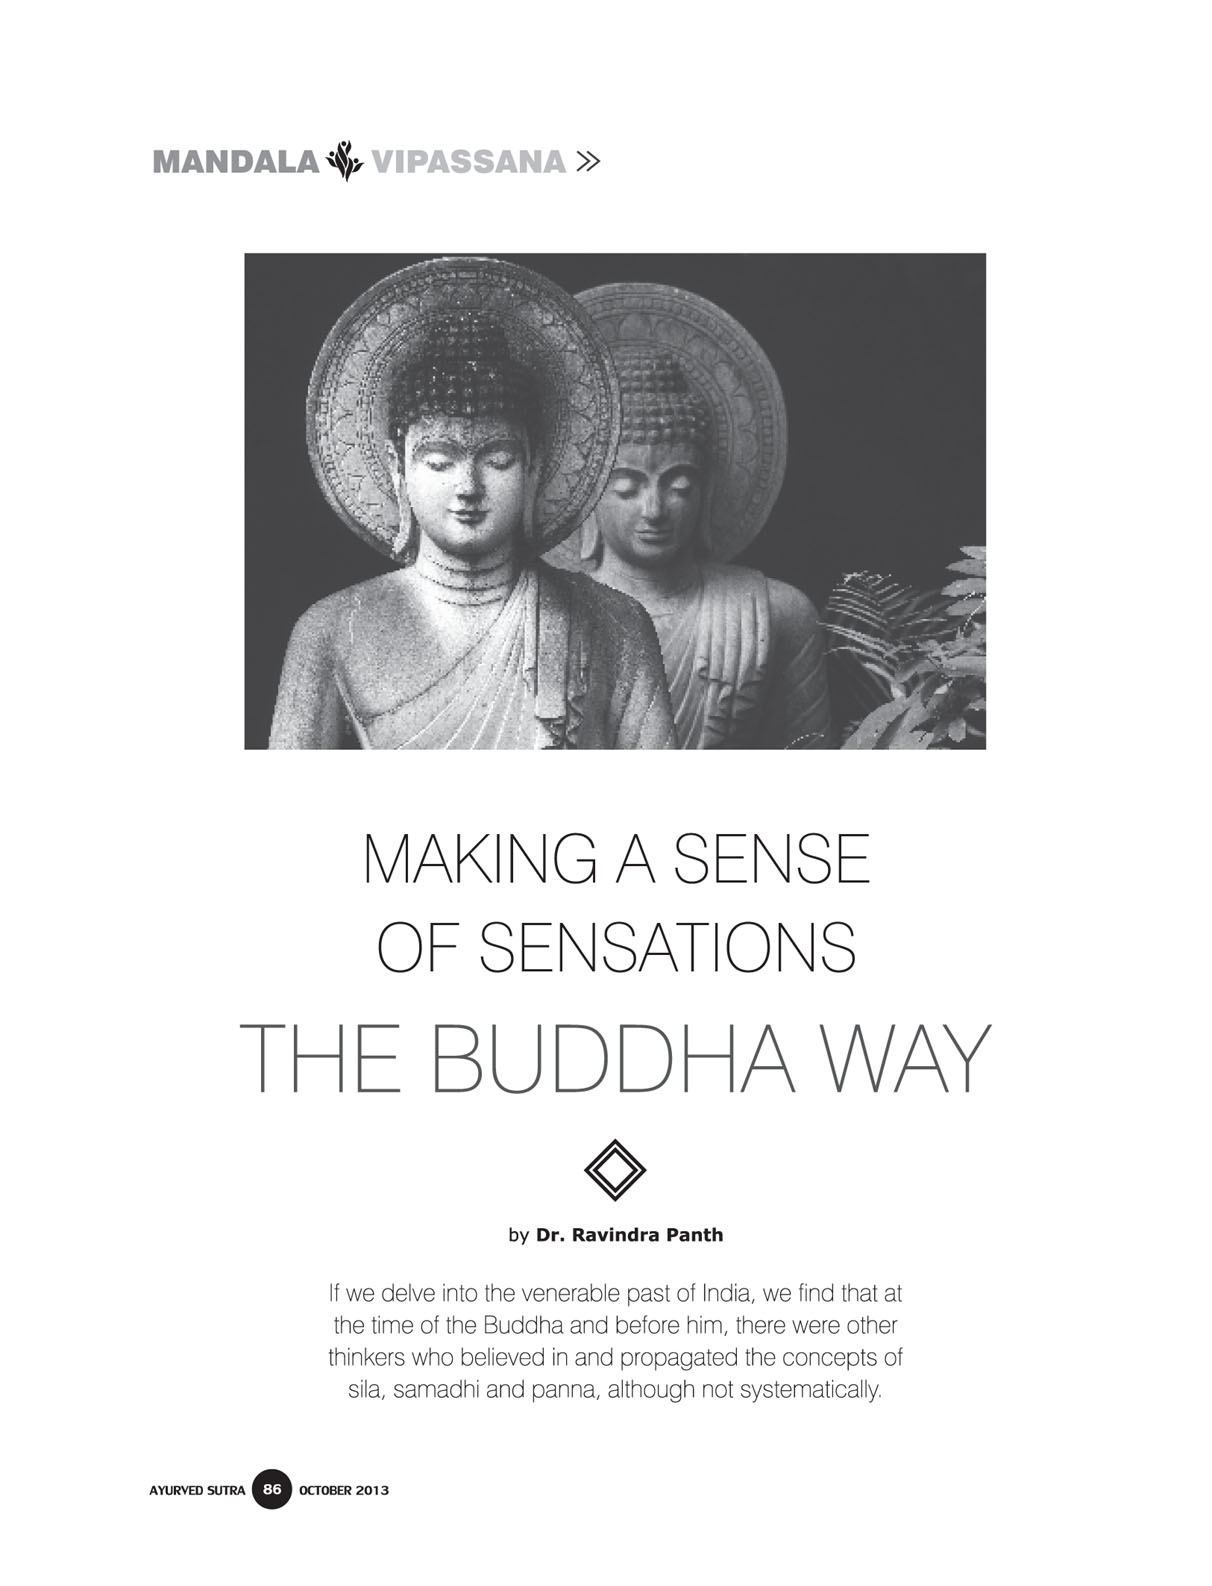 Ayurvedsutra - Issue 6 - Winter Special088